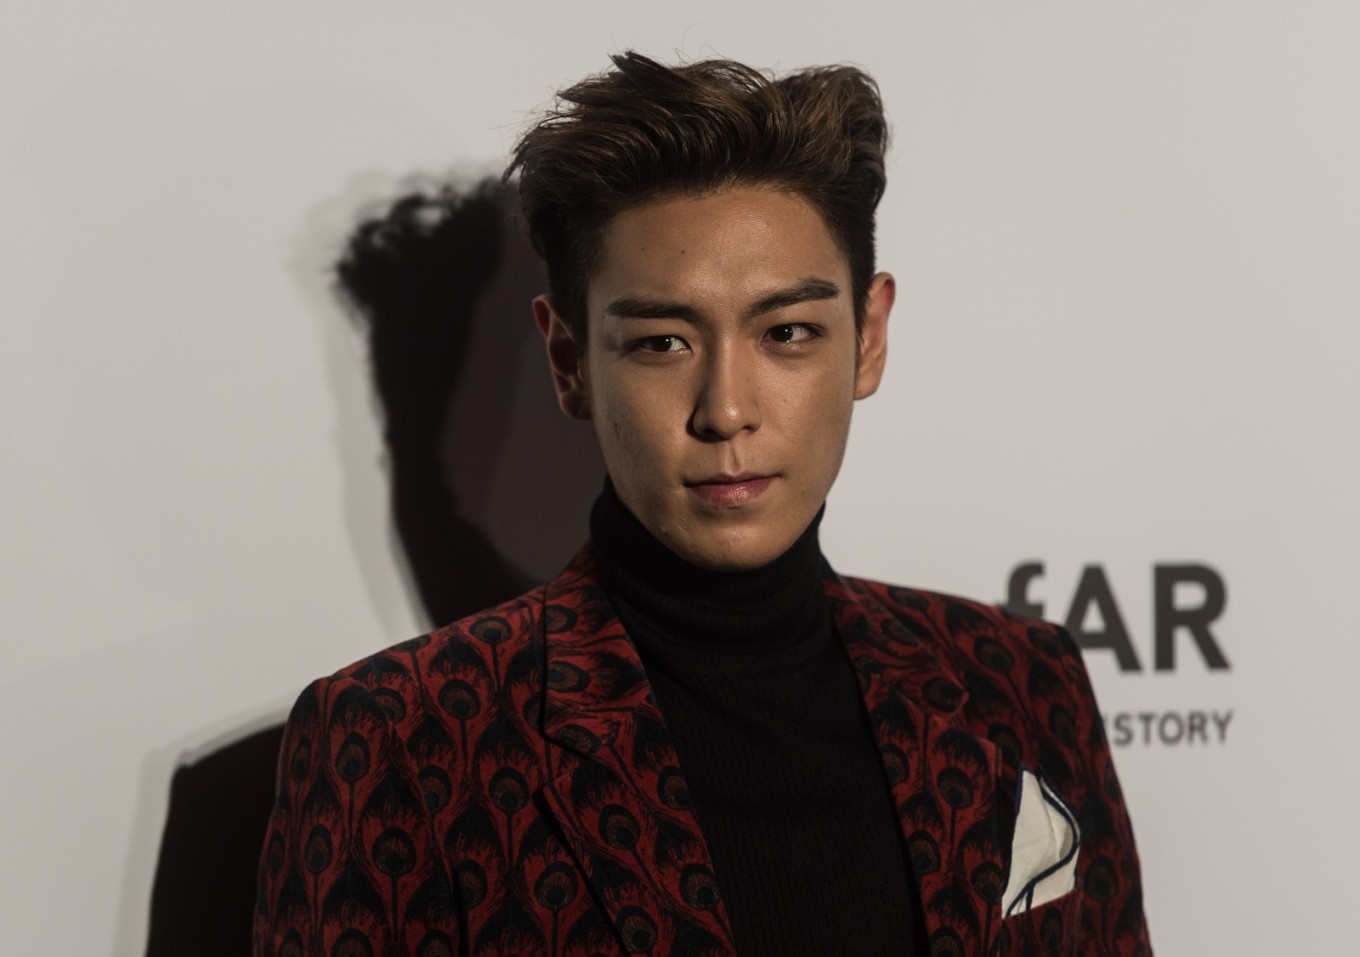 Big Bang T.O.P's fans from 4 countries donate 11m won